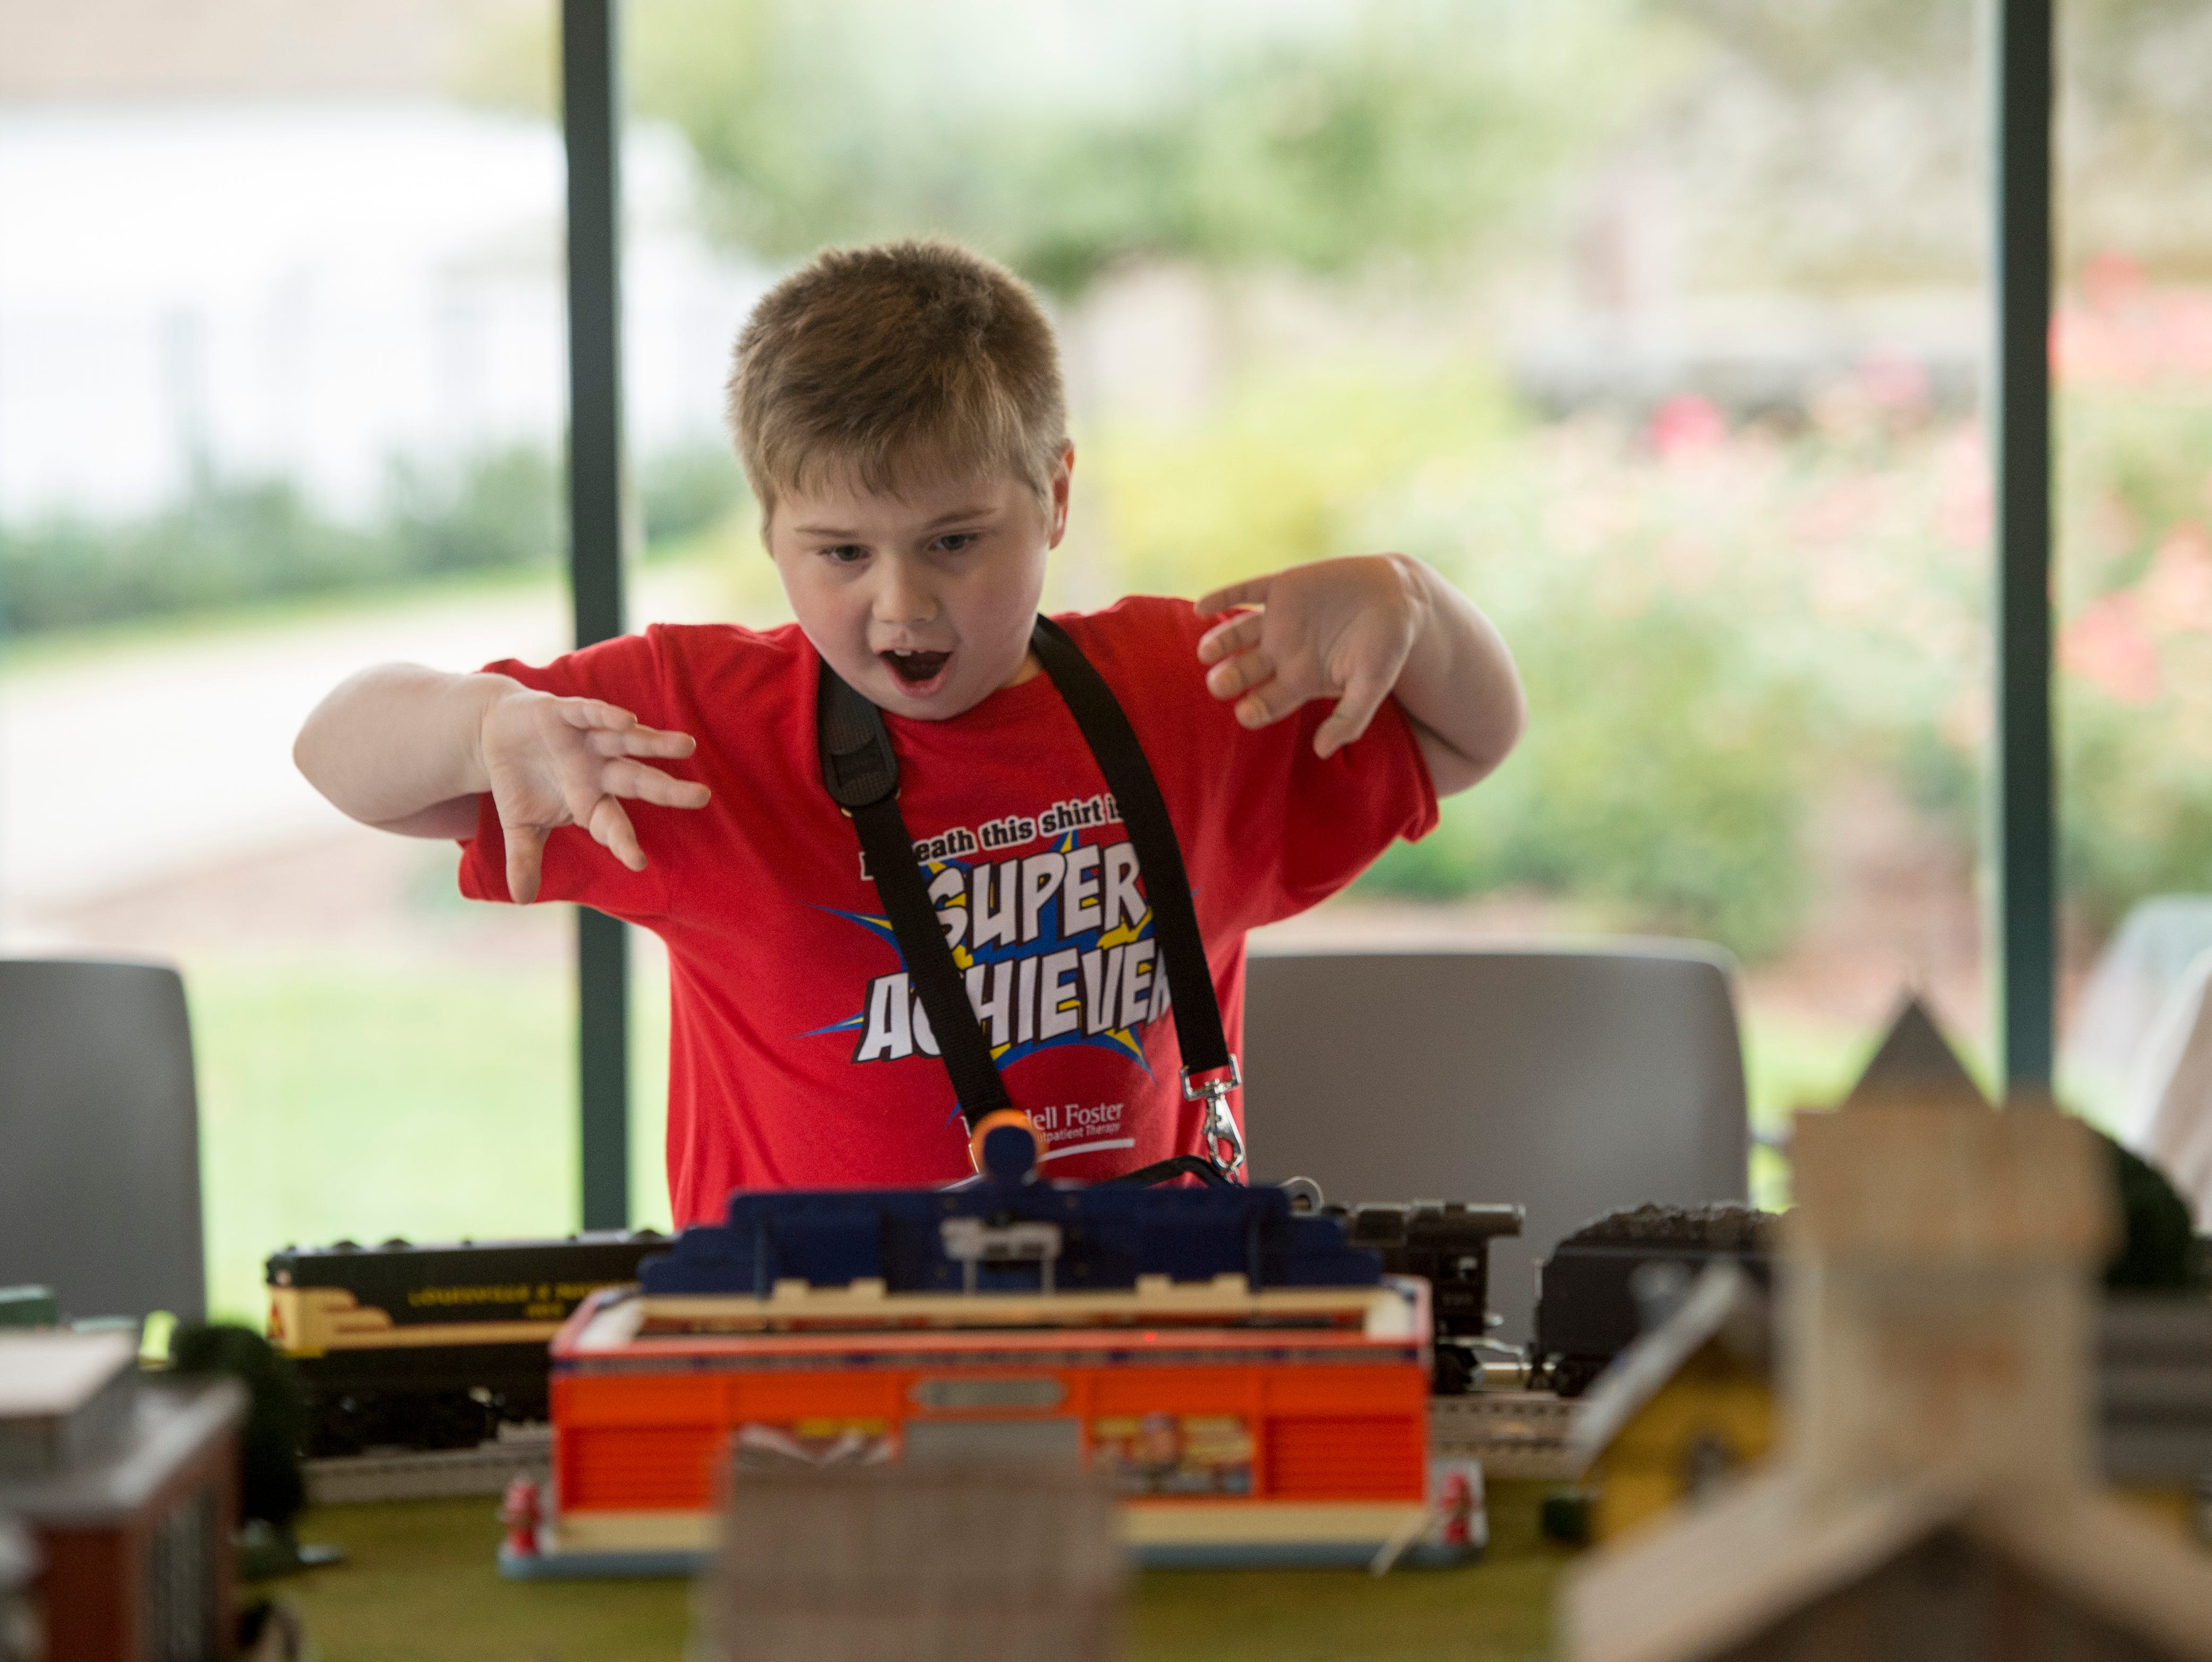 Jacob Cox, 7, gets excited as model trains go around the track during the Local Loco Model Railroad Club show at the Evansville Pagoda Sept. 22, 2018.